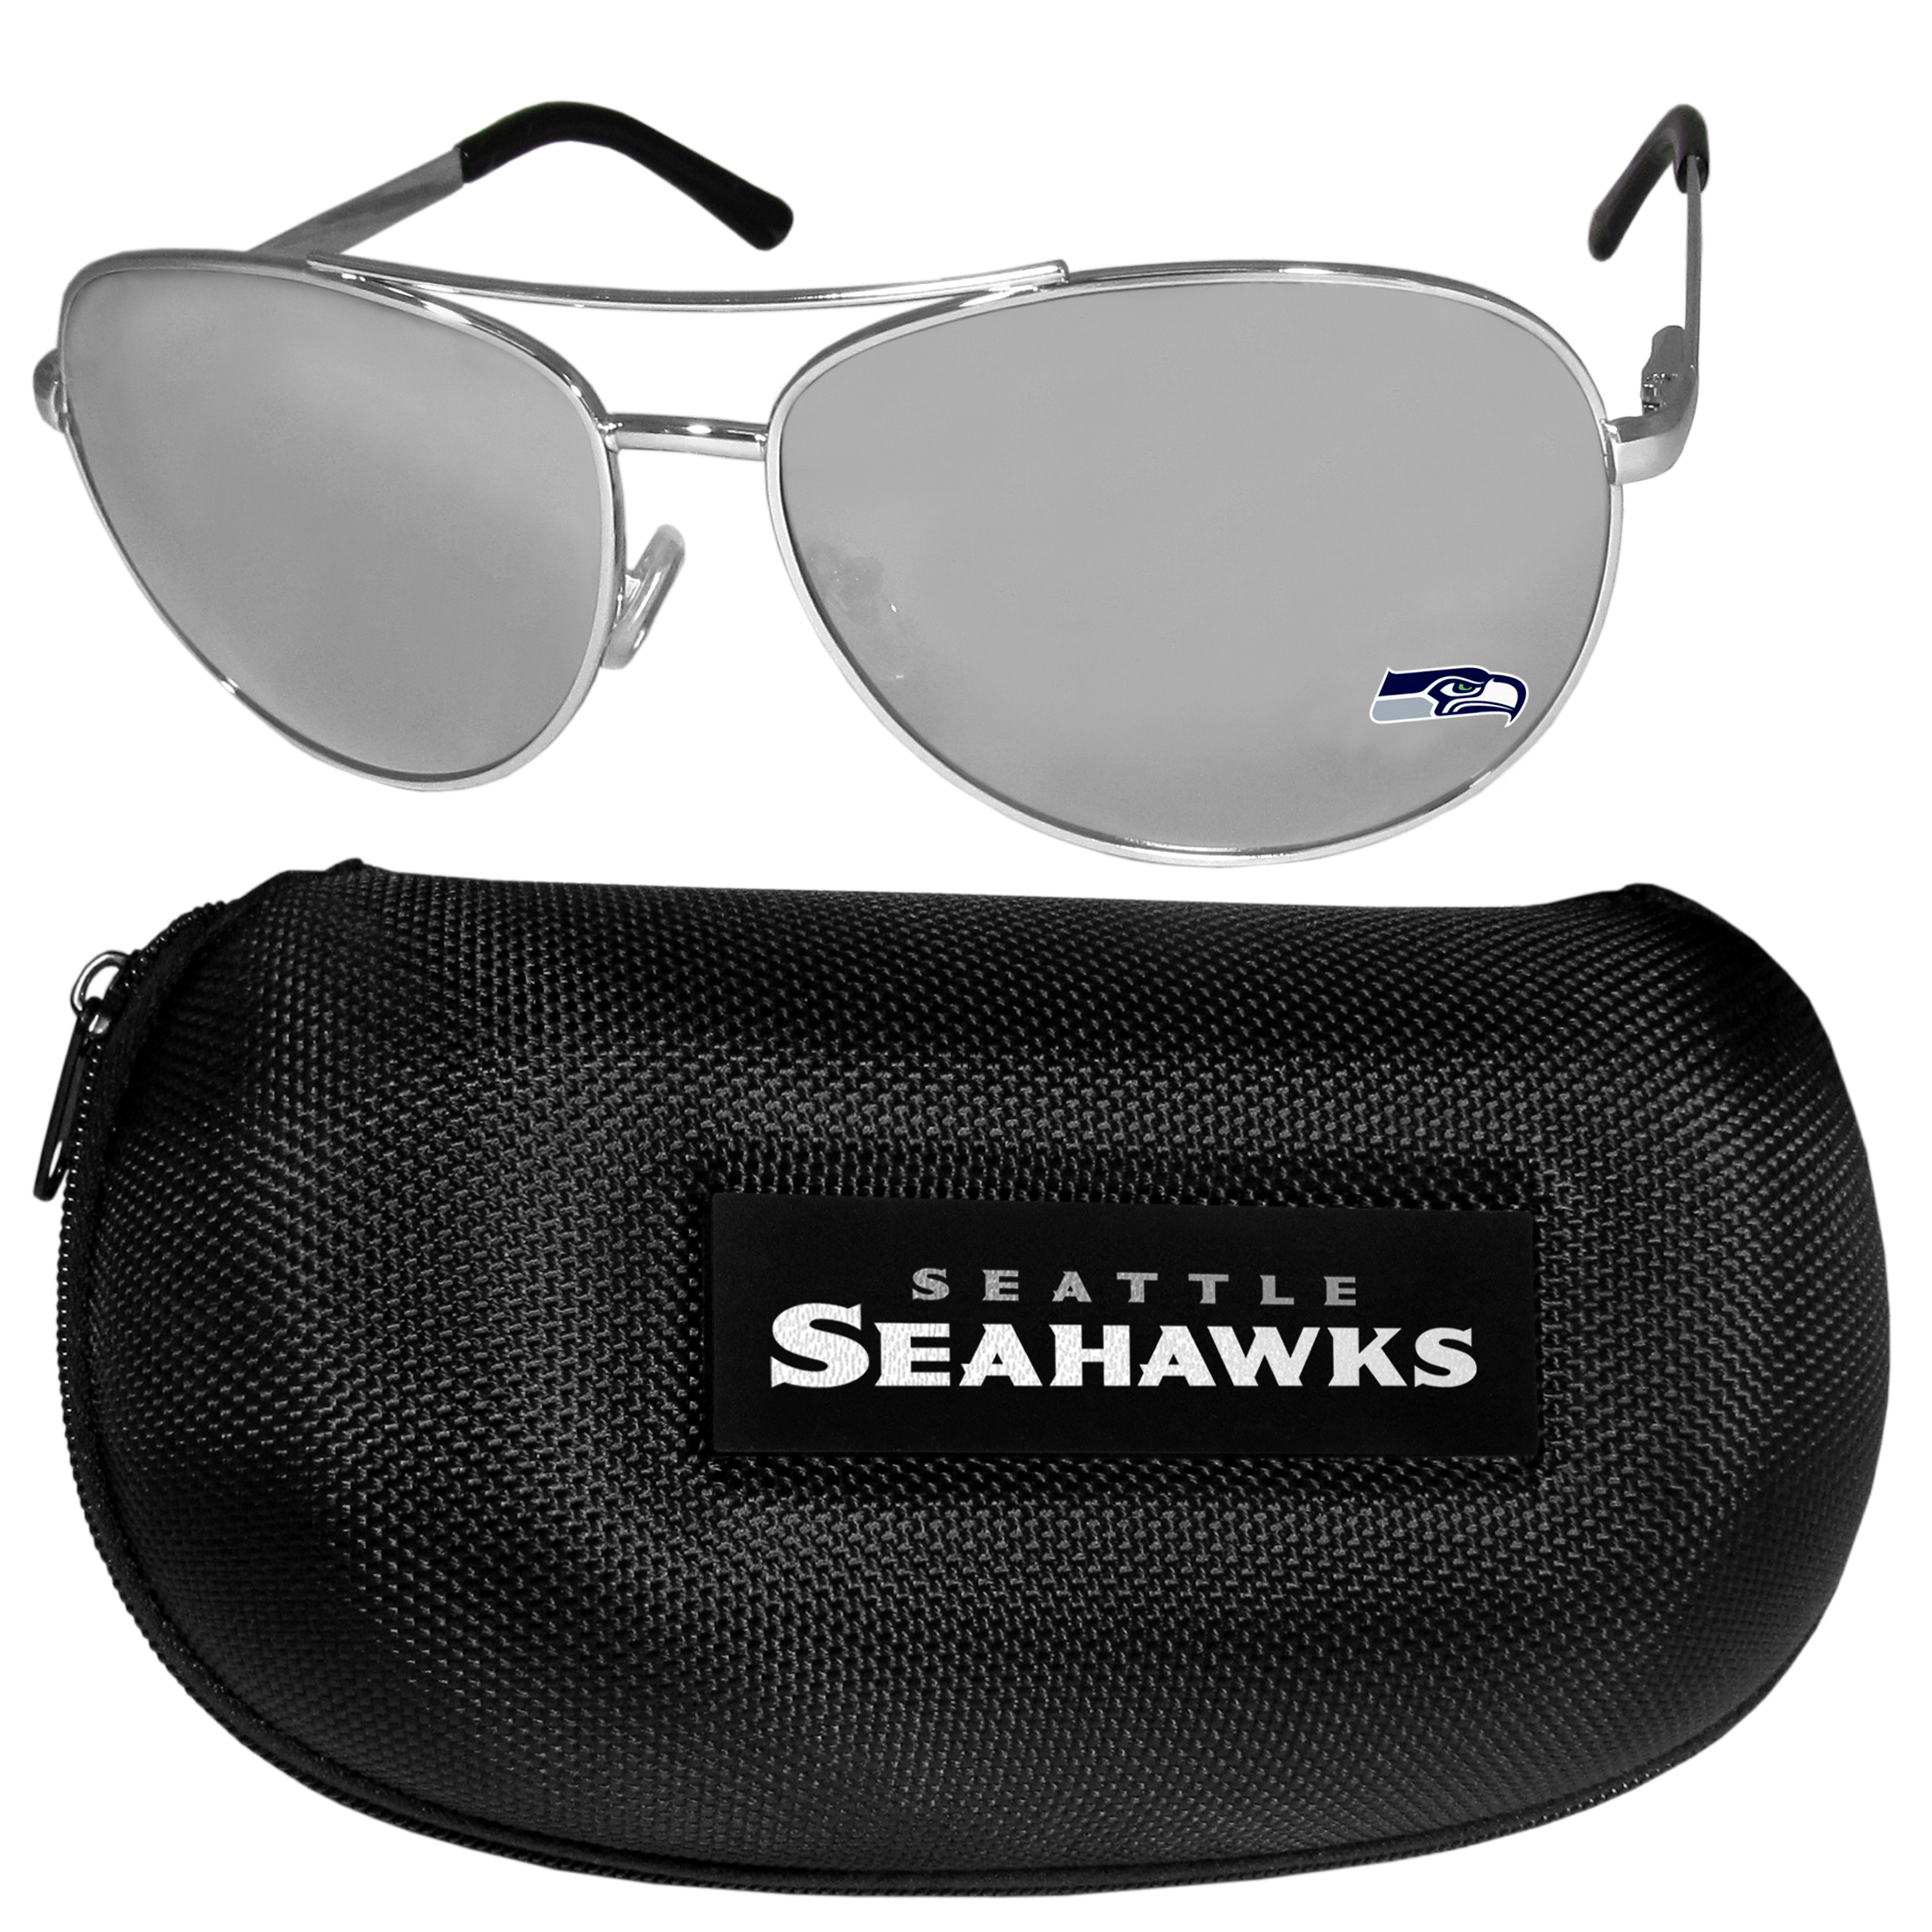 Seattle Seahawks Aviator Sunglasses and Zippered Carrying Case - Aviator sunglasses are truly an iconic retro fashion statement that never goes out-of-style. Our Seattle Seahawks  aviator sunglasses pair this classic look with your love of the game. The iridium coated lenses reduce glare while driving, boating, golfing and their 100% UVA/UVB rating provides you with the maximum UV protection for all your outdoor activities. A millennial favorite, these affordable designer frames are the perfect eyewear accessory for a sports fan that is looking for high-quality at an affordable price. The durable, flex hinged frames are tough enough for hiking and camping or if you prefer sun bathing by the pool or on the beach these shades will really stand the test of time. The sunglasses come with a hard shell zippered case which has a large team logo on the lid that will make even the most die-hard fan proud!